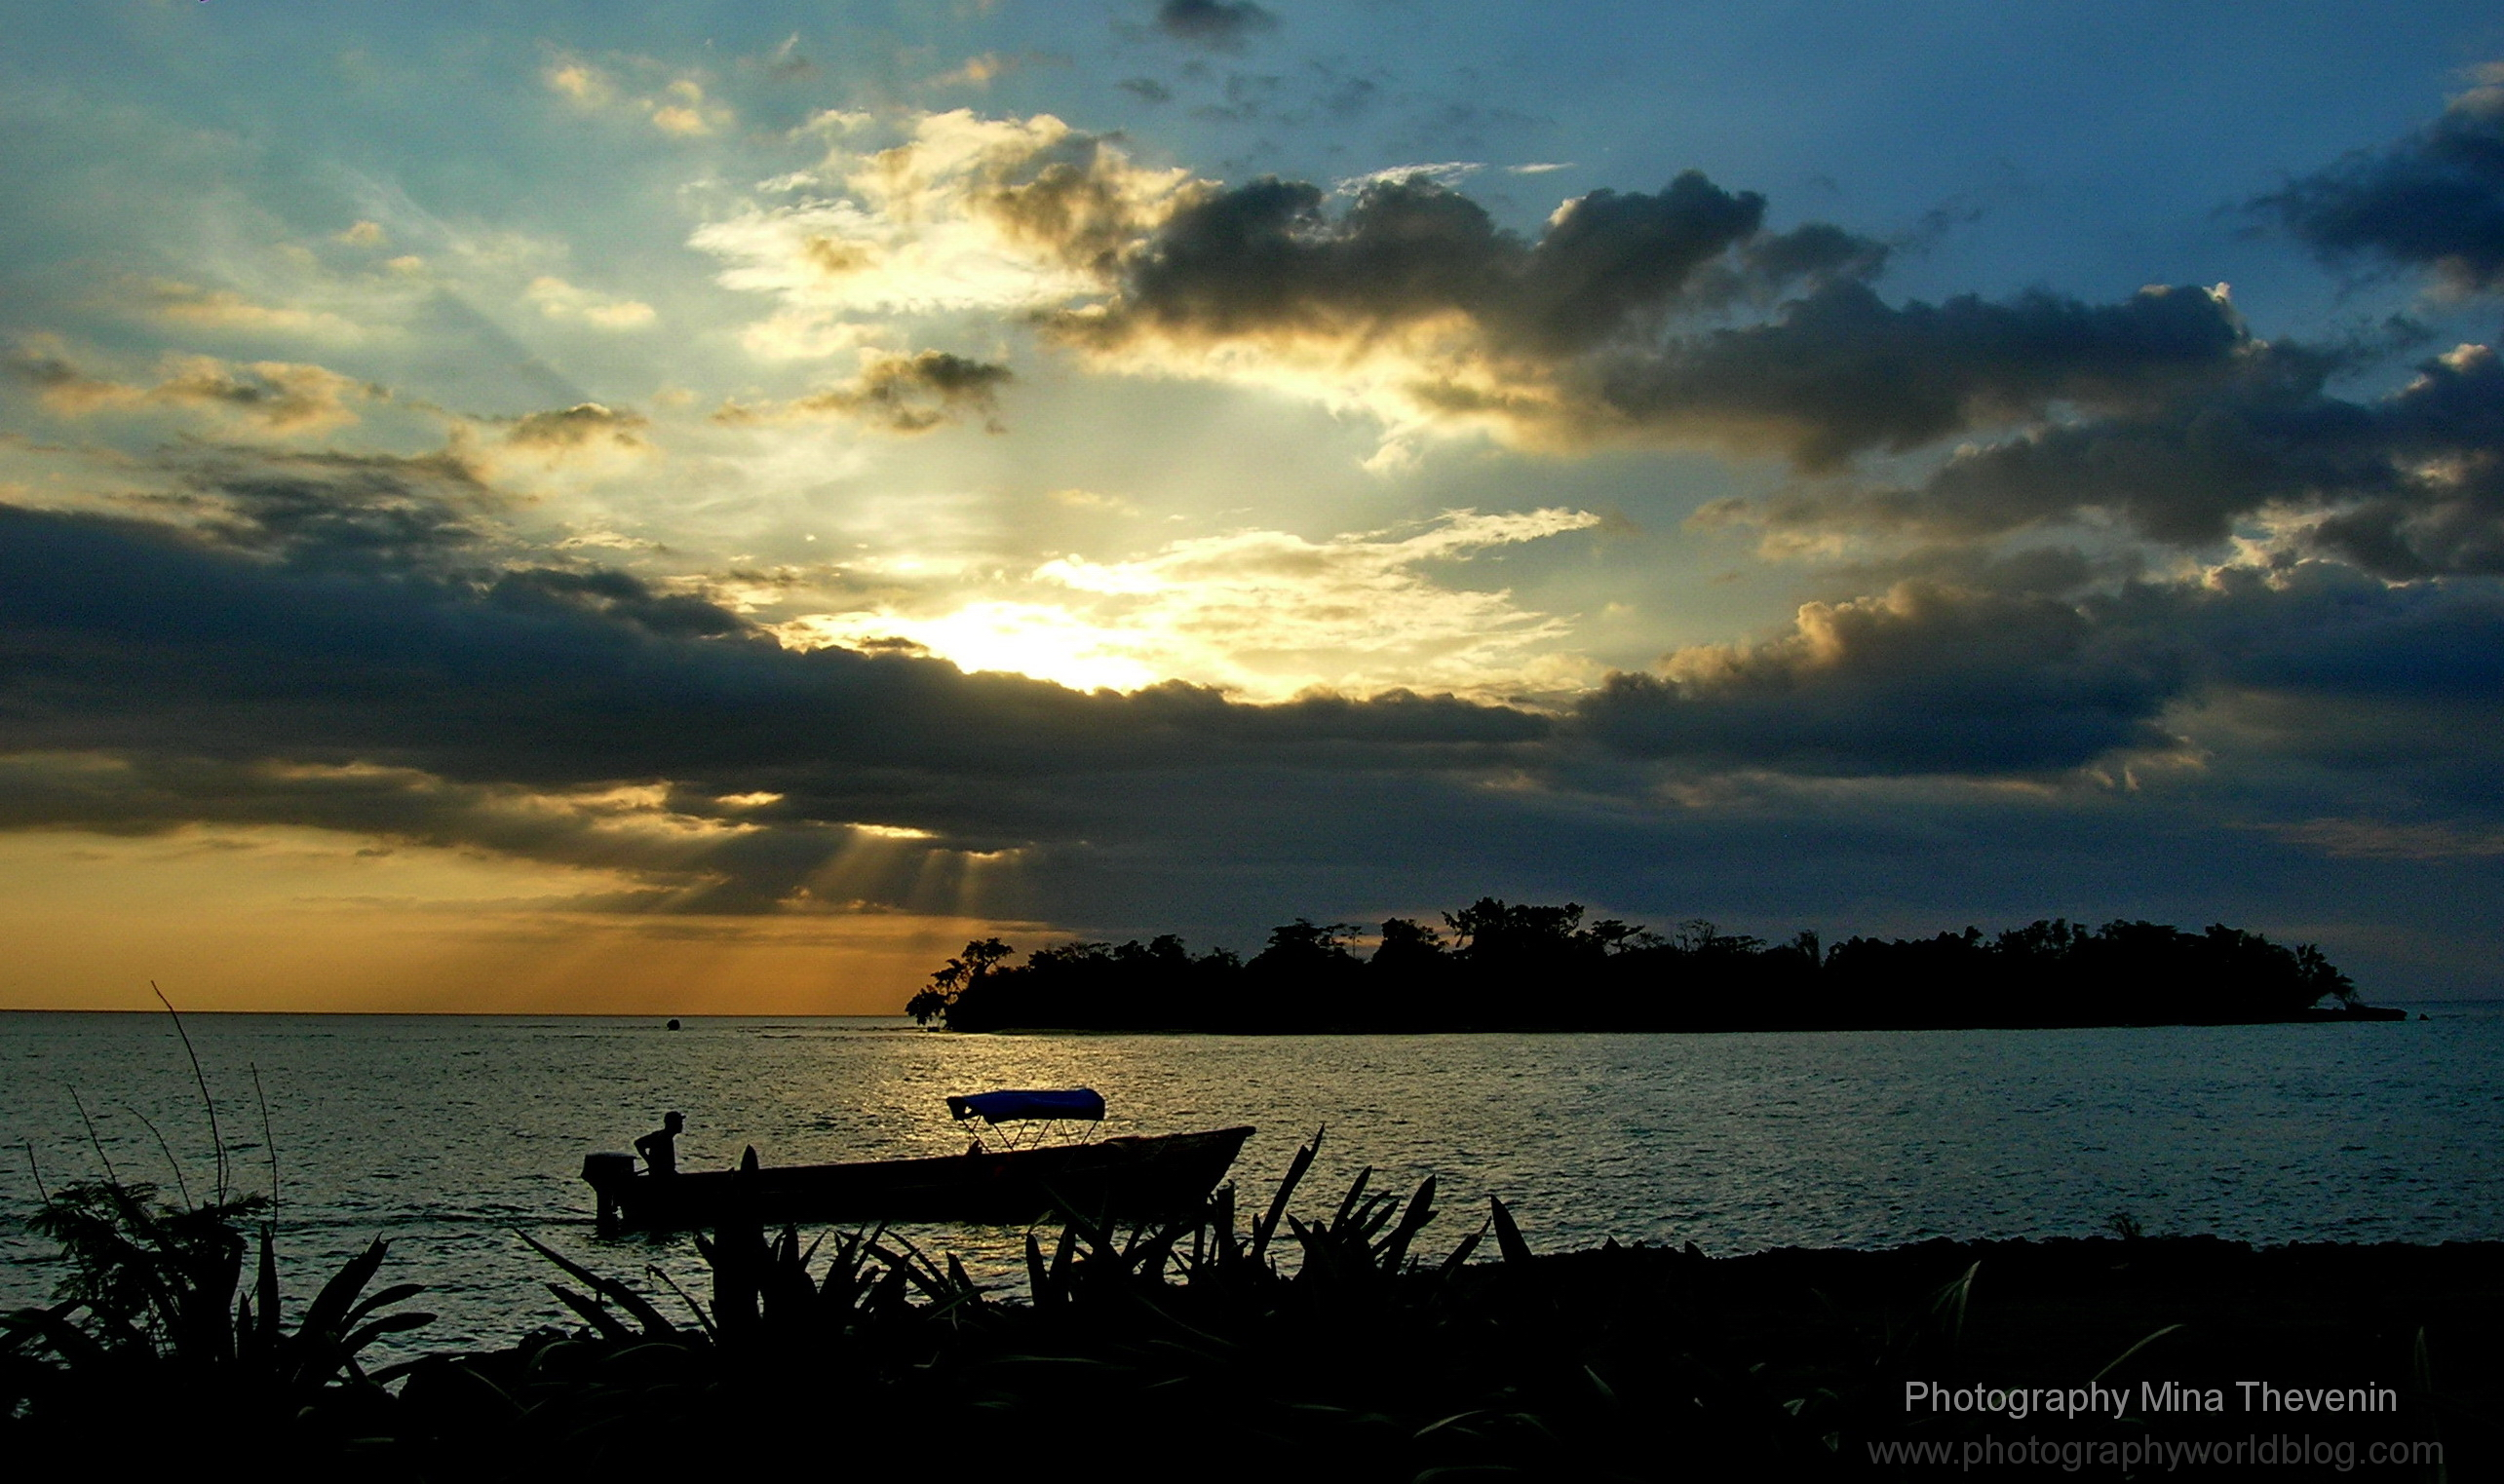 © Bloody Bay Sunset in Jamaica. Photograph by Mina Thevenin. www.photographyworld.org